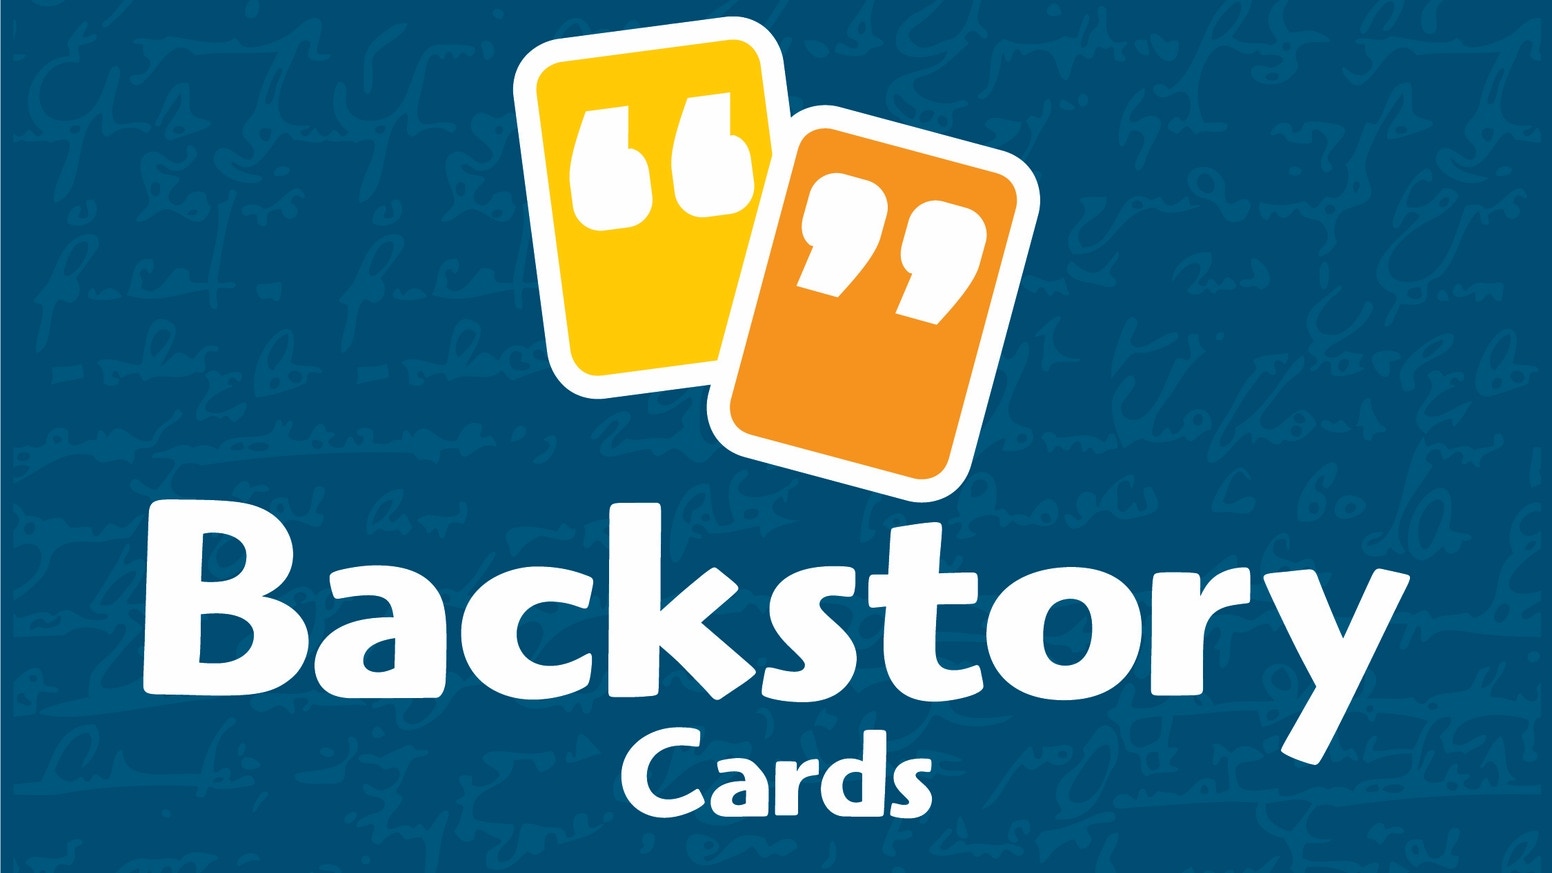 Backstory Cards help you and your friends create vibrant backstories for roleplaying games, no matter the system or genre.